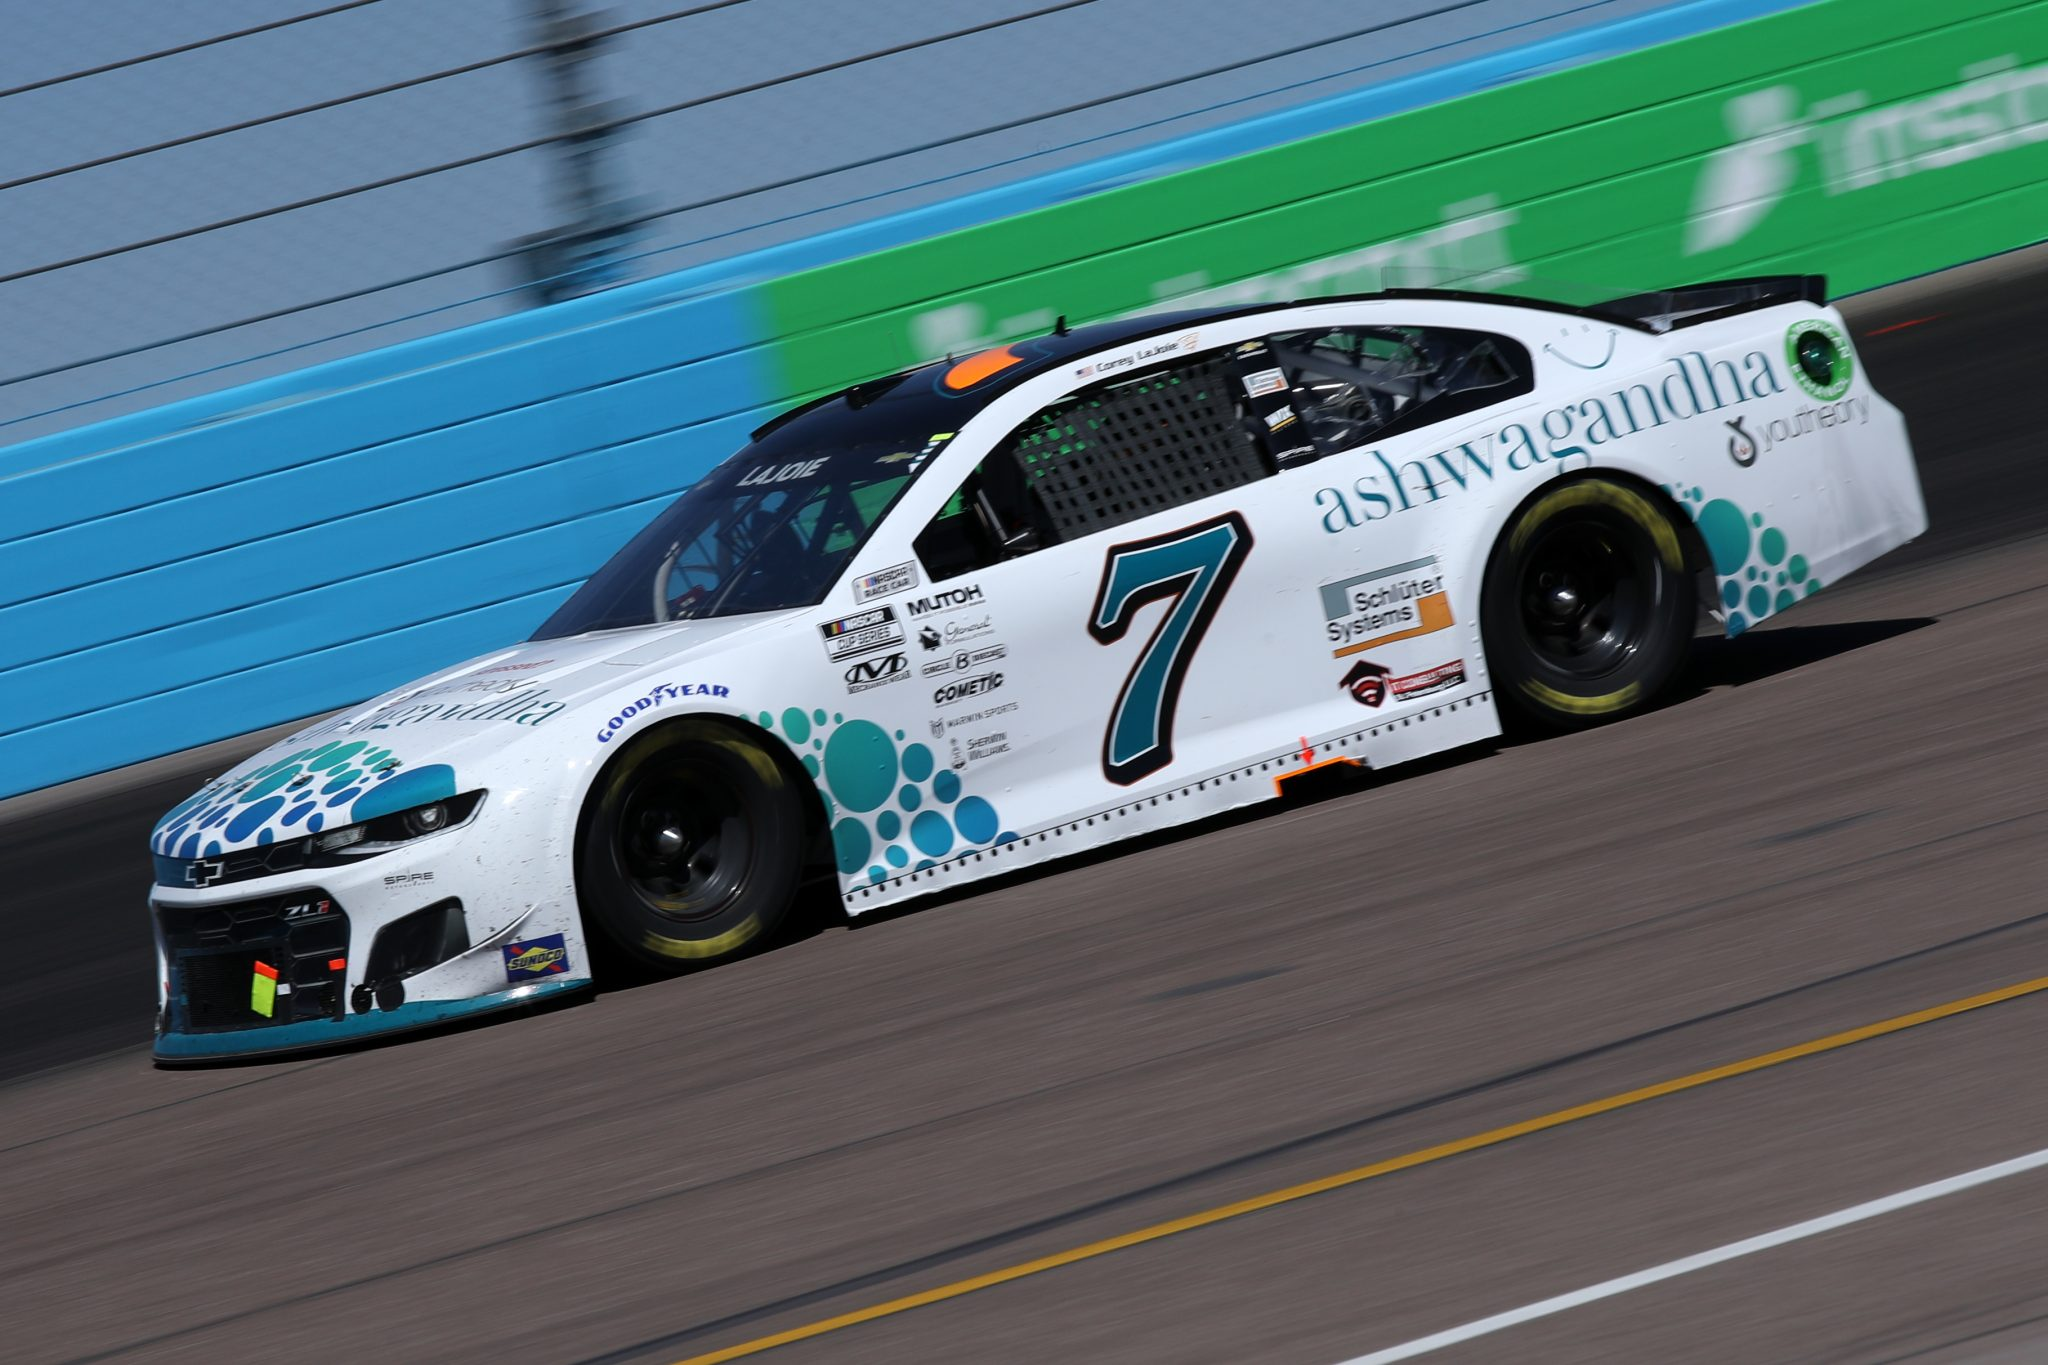 AVONDALE, ARIZONA - MARCH 14: Corey LaJoie, driver of the #7 Youtheory Chevrolet, drives during the NASCAR Cup Series Instacart 500 at Phoenix Raceway on March 14, 2021 in Avondale, Arizona. (Photo by Sean Gardner/Getty Images) | Getty Images